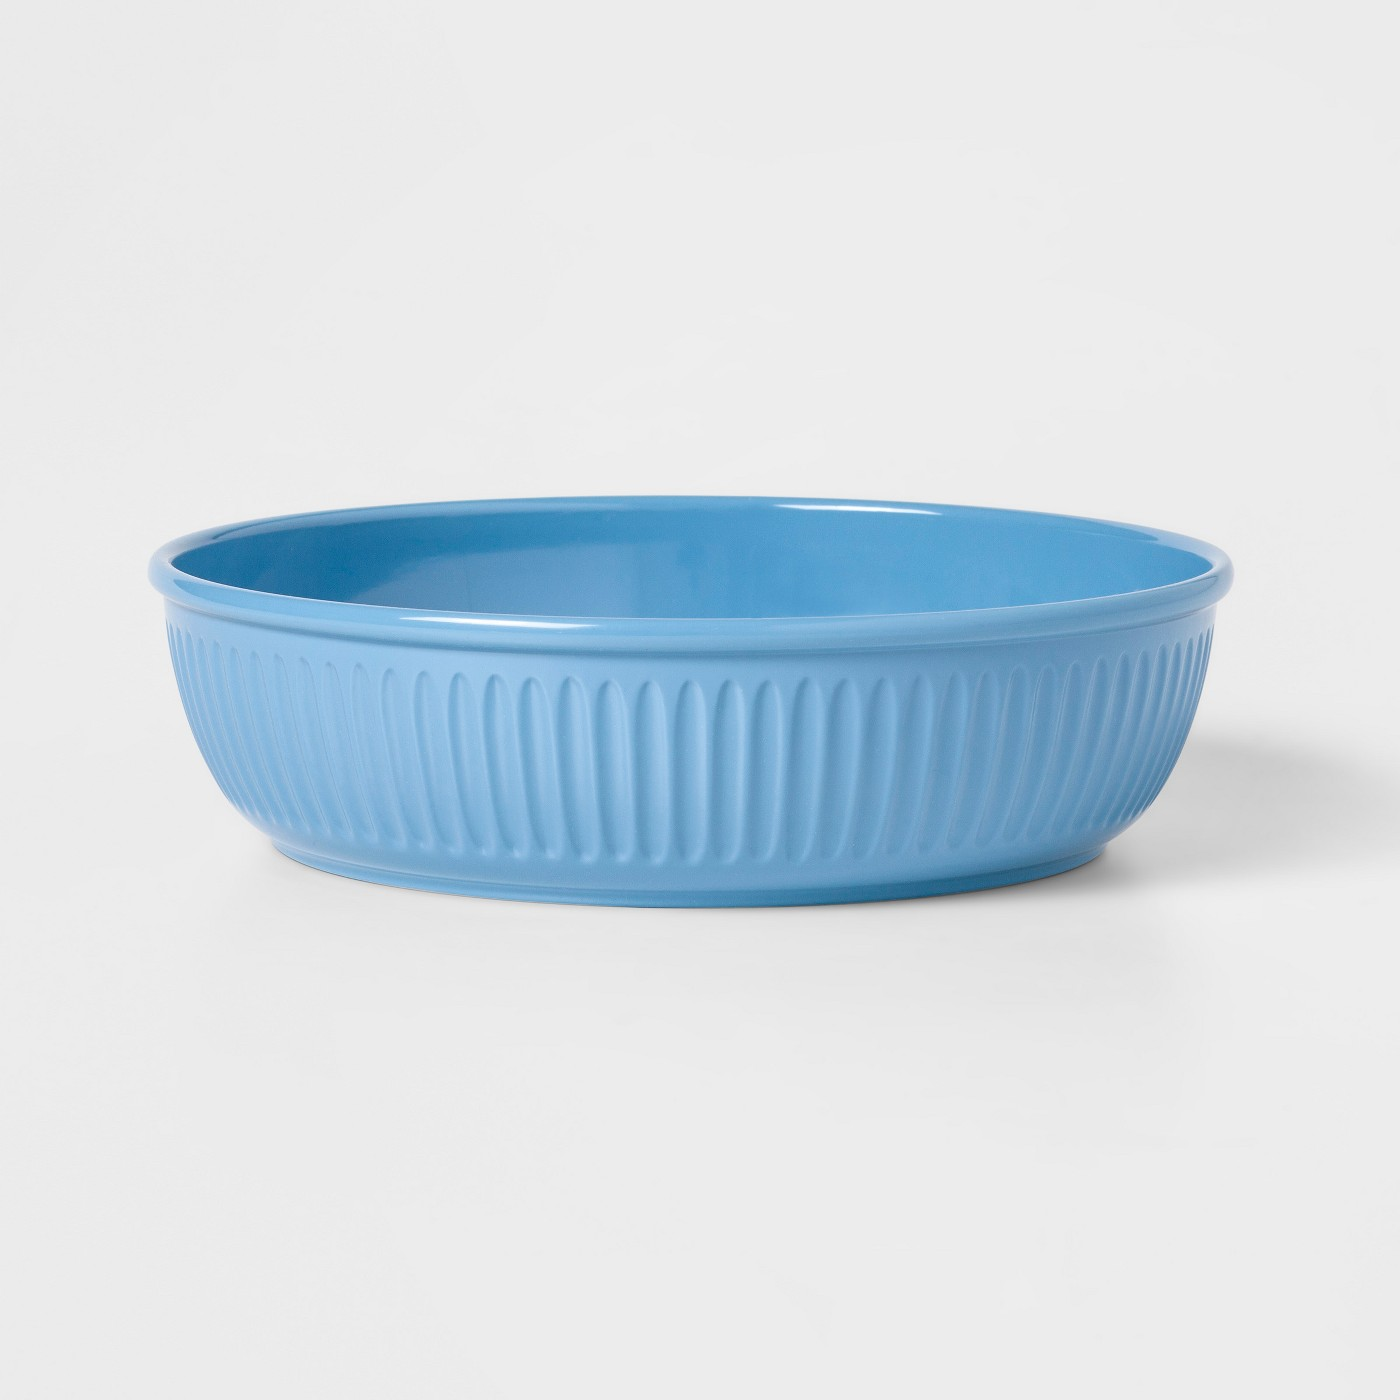 "44oz Melamine Pasta Bowl - Thresholdâ""¢ - image 1 of 1"